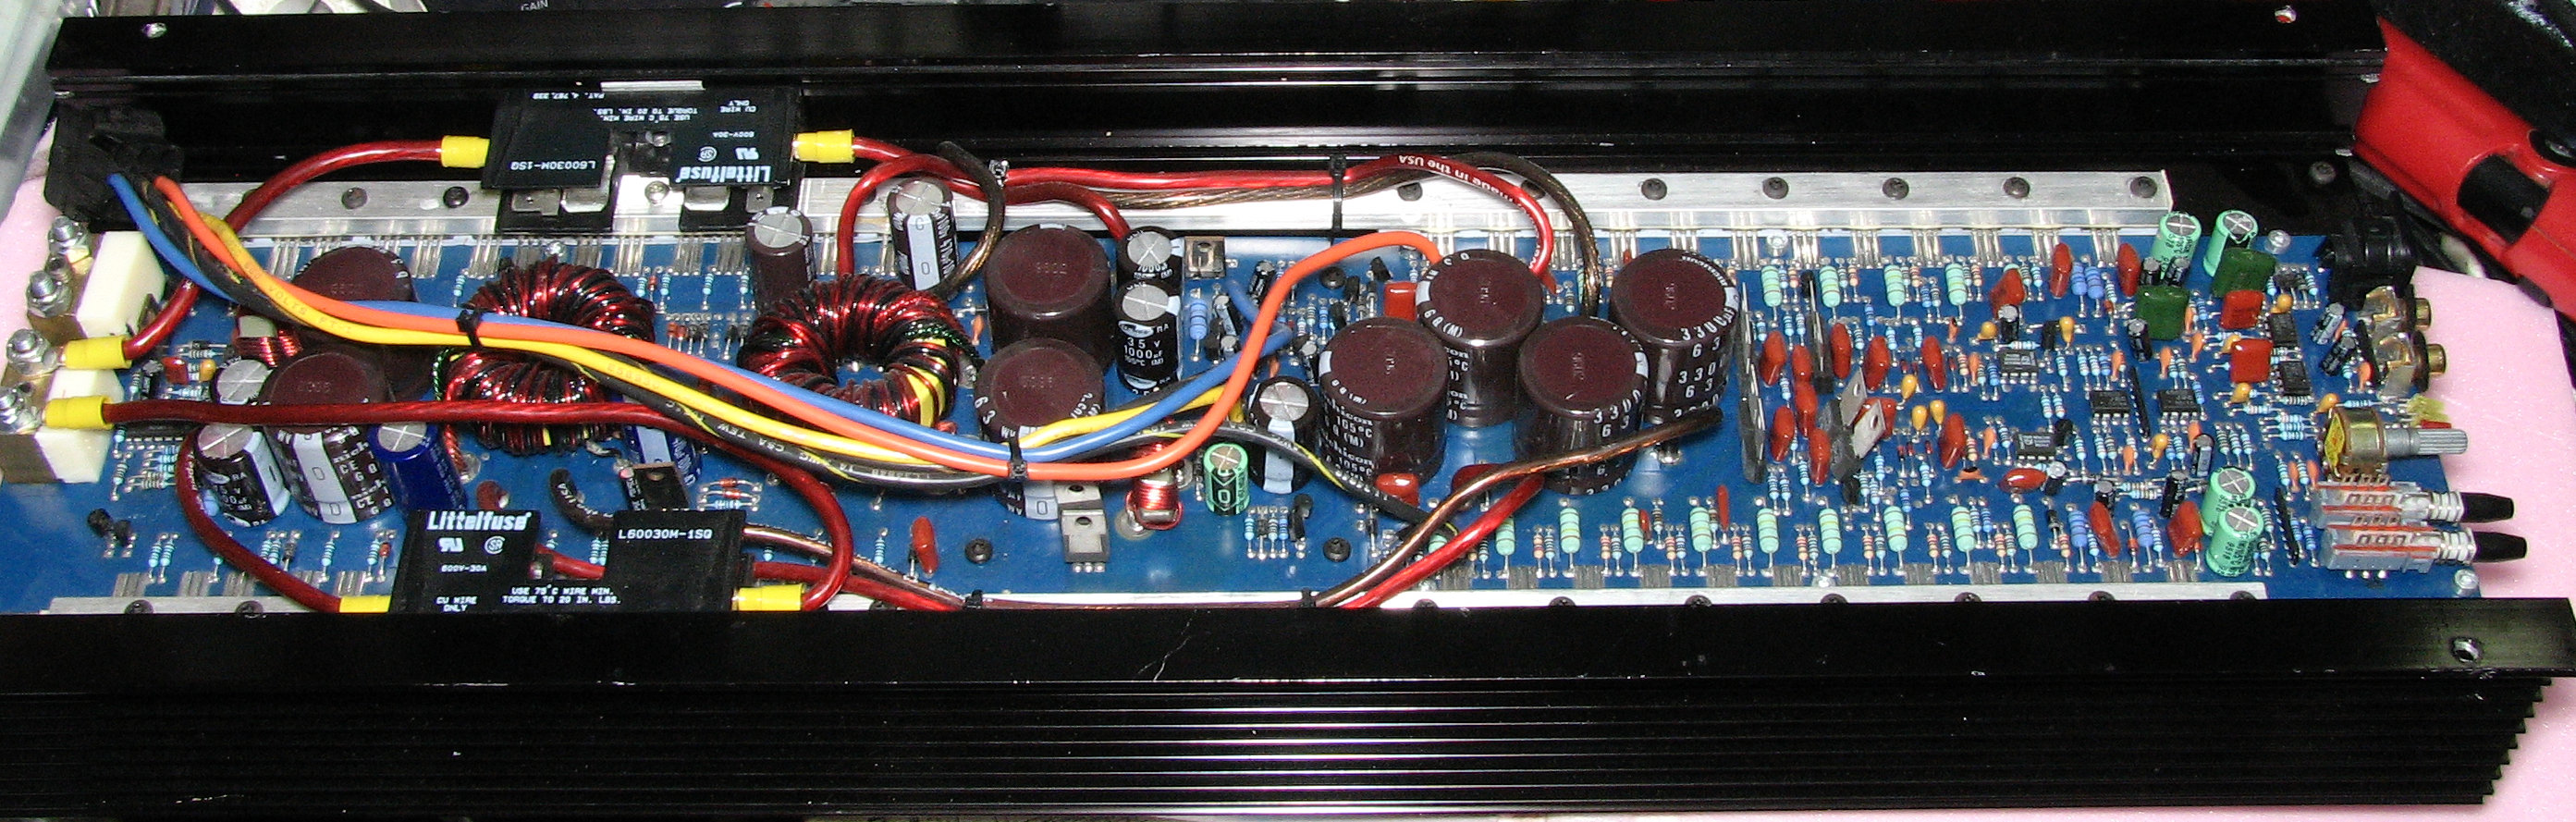 Im Looking For Amp Wiring Diagrams Diyaudio Orion Xtr Subwoofer Http Bcae1com Temp Orionxtr2250 Img 0213b